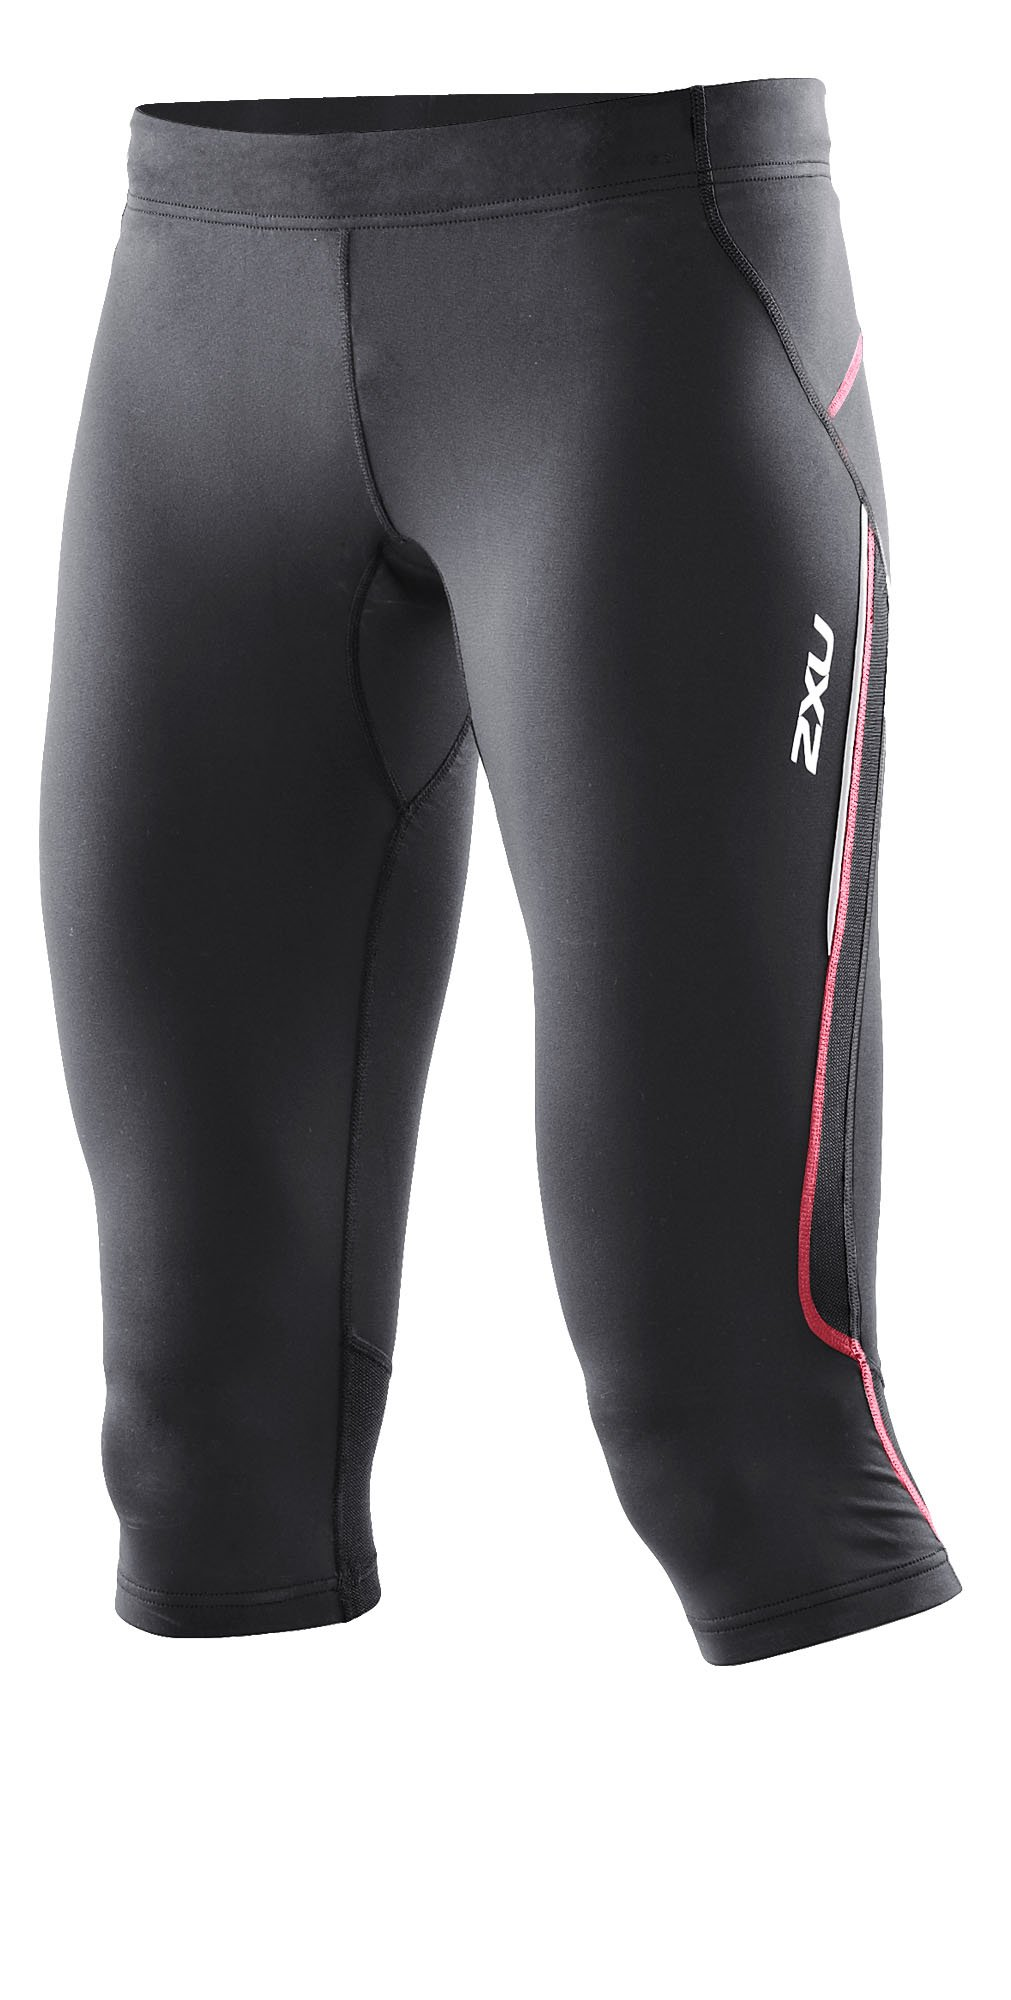 2xu Collant trainer 3/4 w v�tement running femme